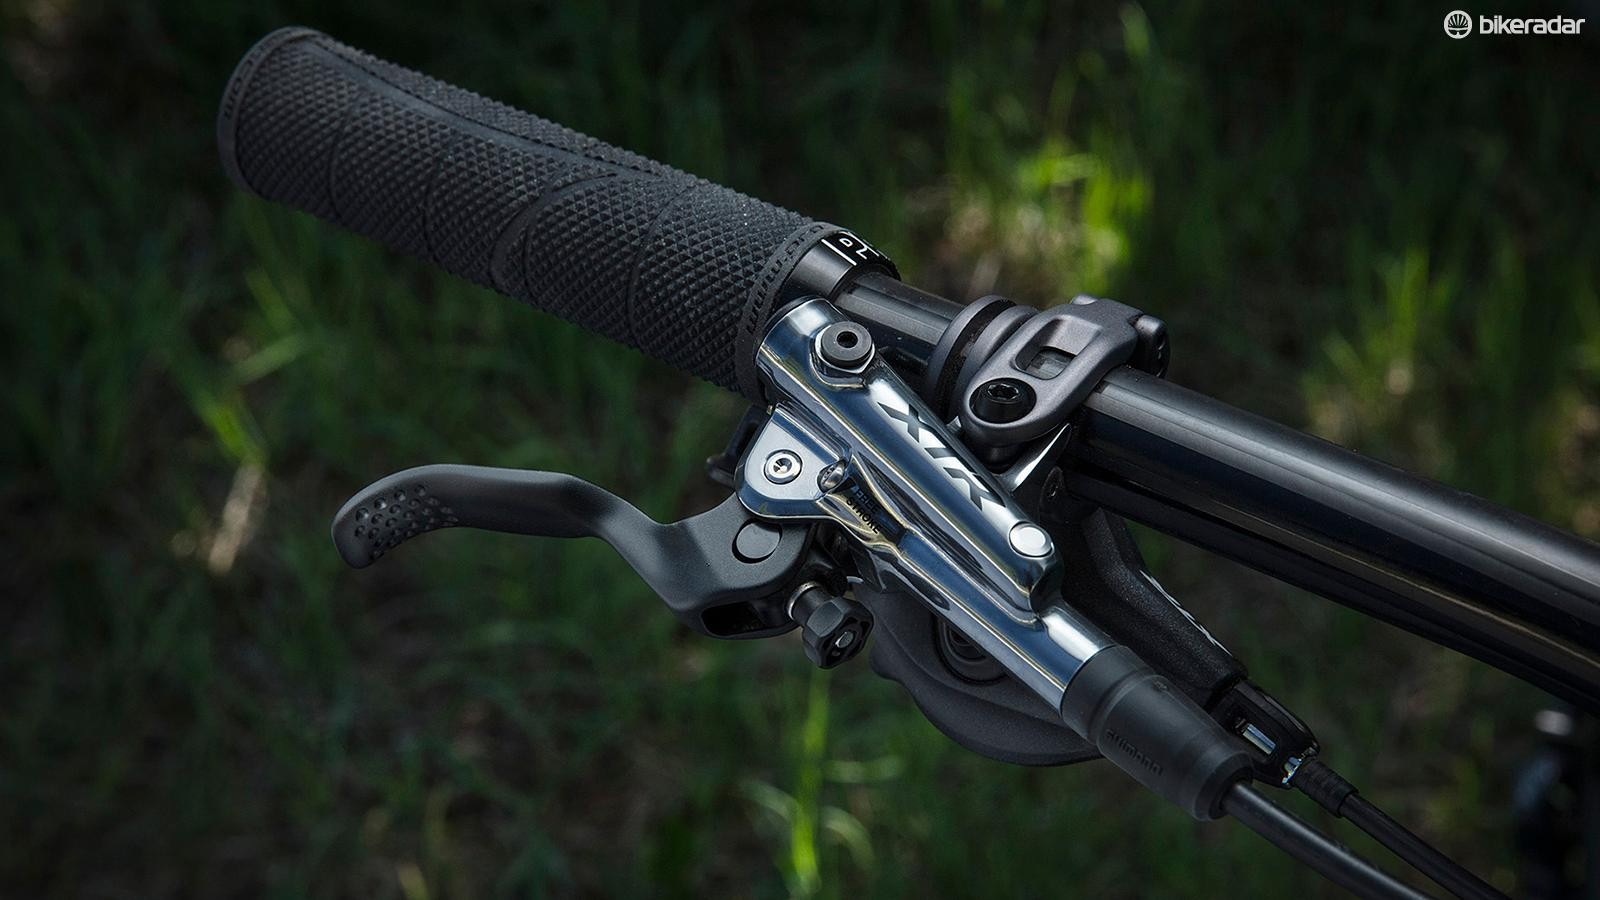 The BL-M9120 Enduro brake levers provide a wide range of modulation